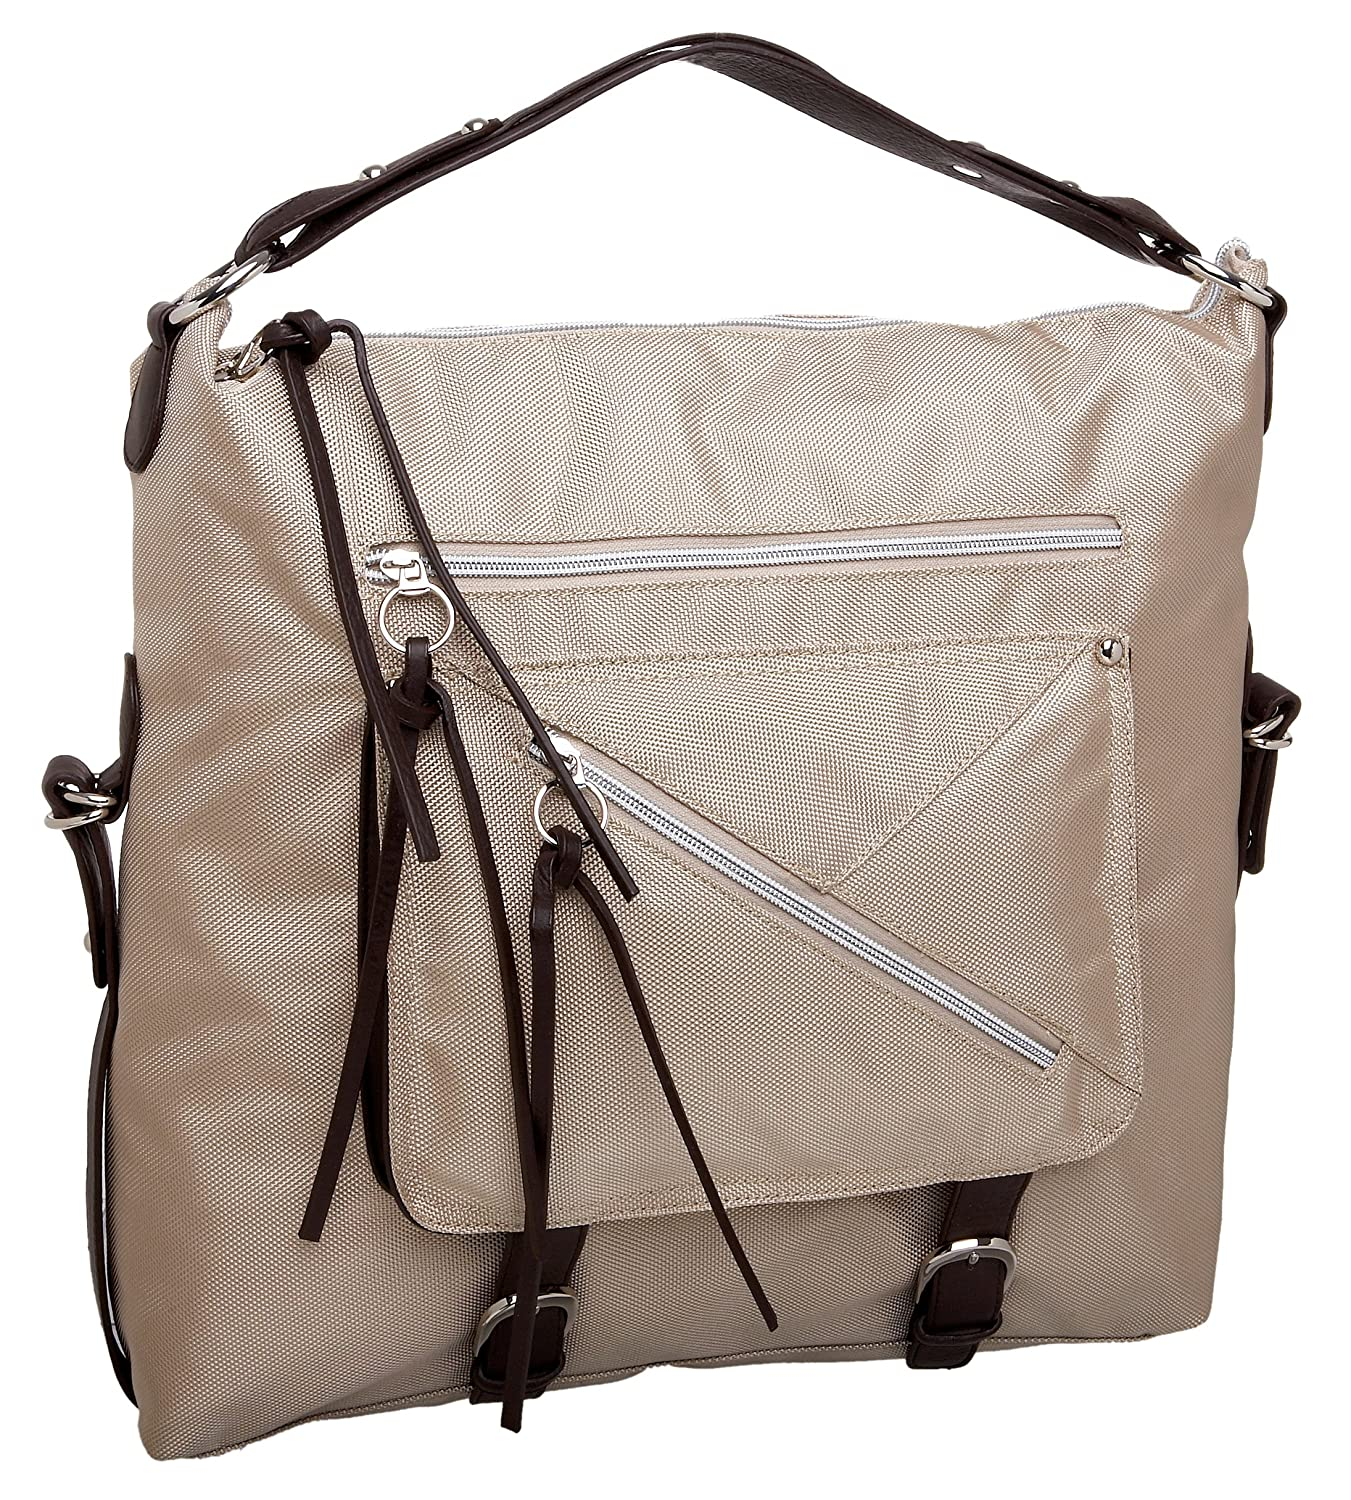 Endless.com: SR SQUARED by Sondra Roberts Nylon Messenger: Categories - Free Overnight Shipping &amp; Return Shipping from endless.com